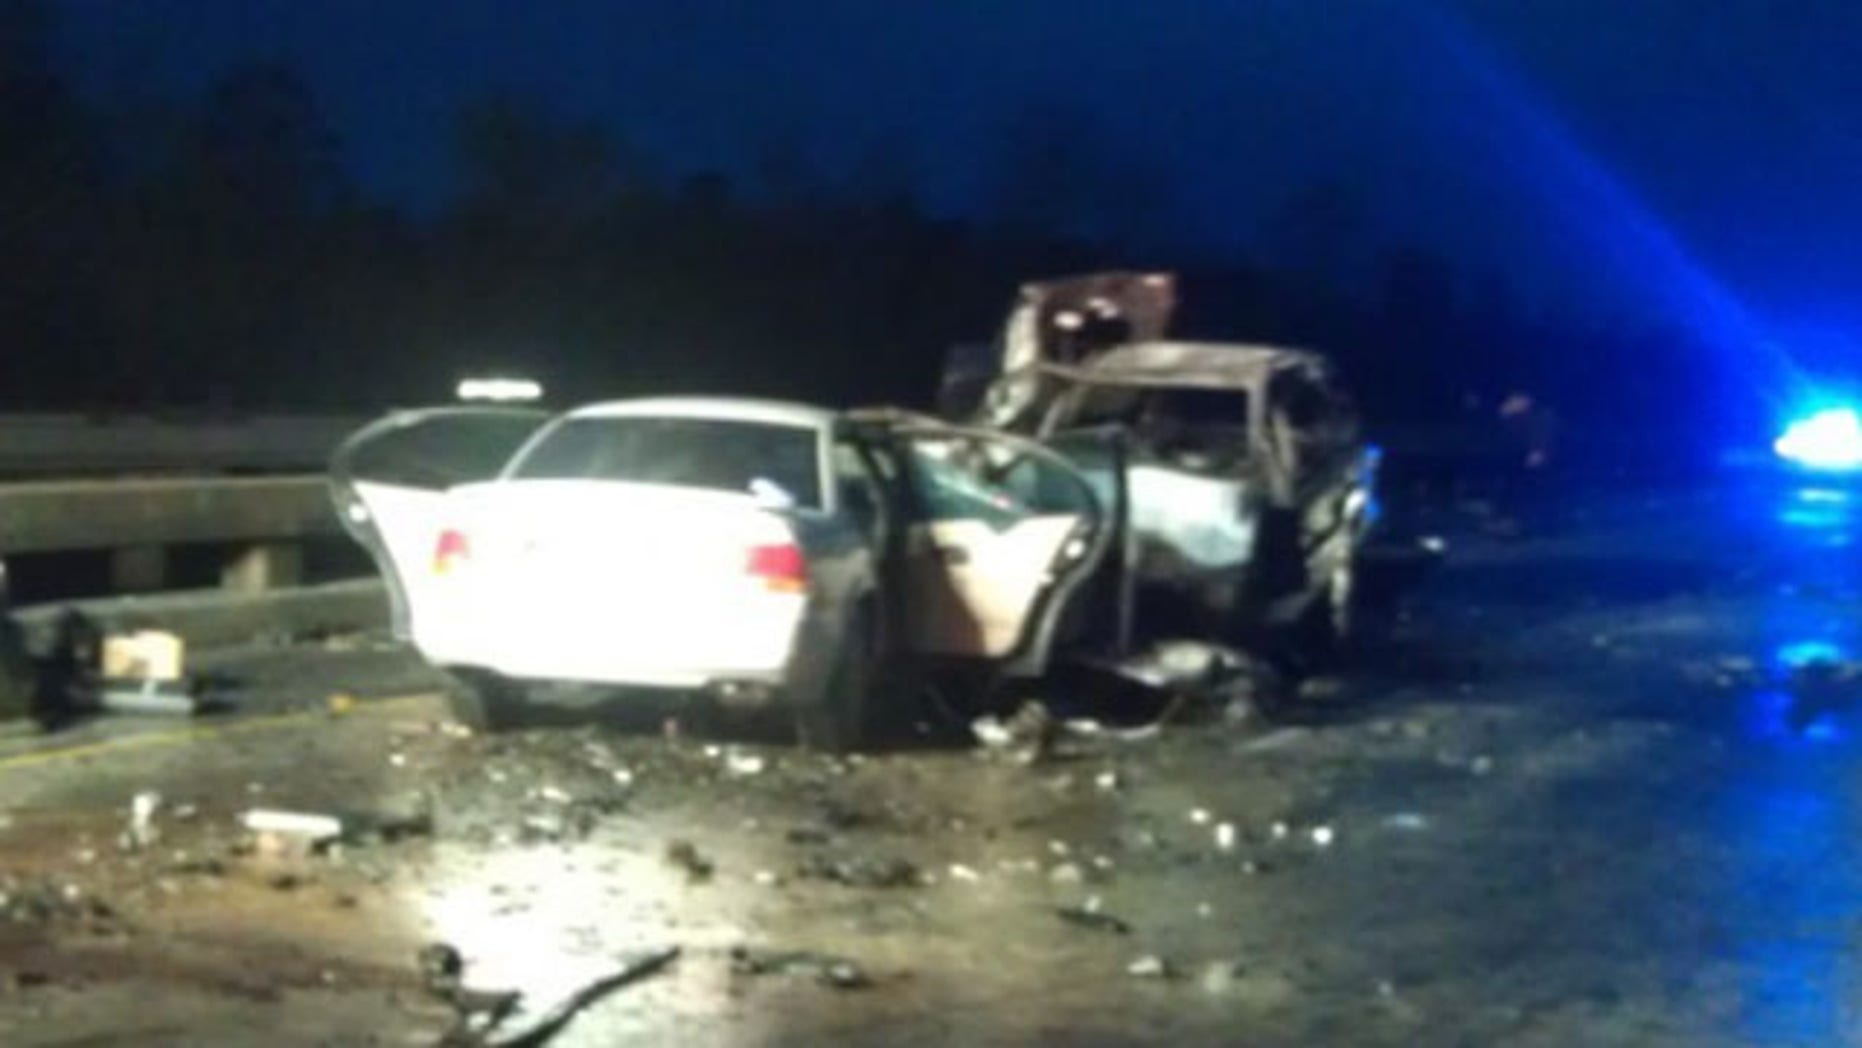 Five people were killed in a head-on collision on the I-10 near La Place, La.